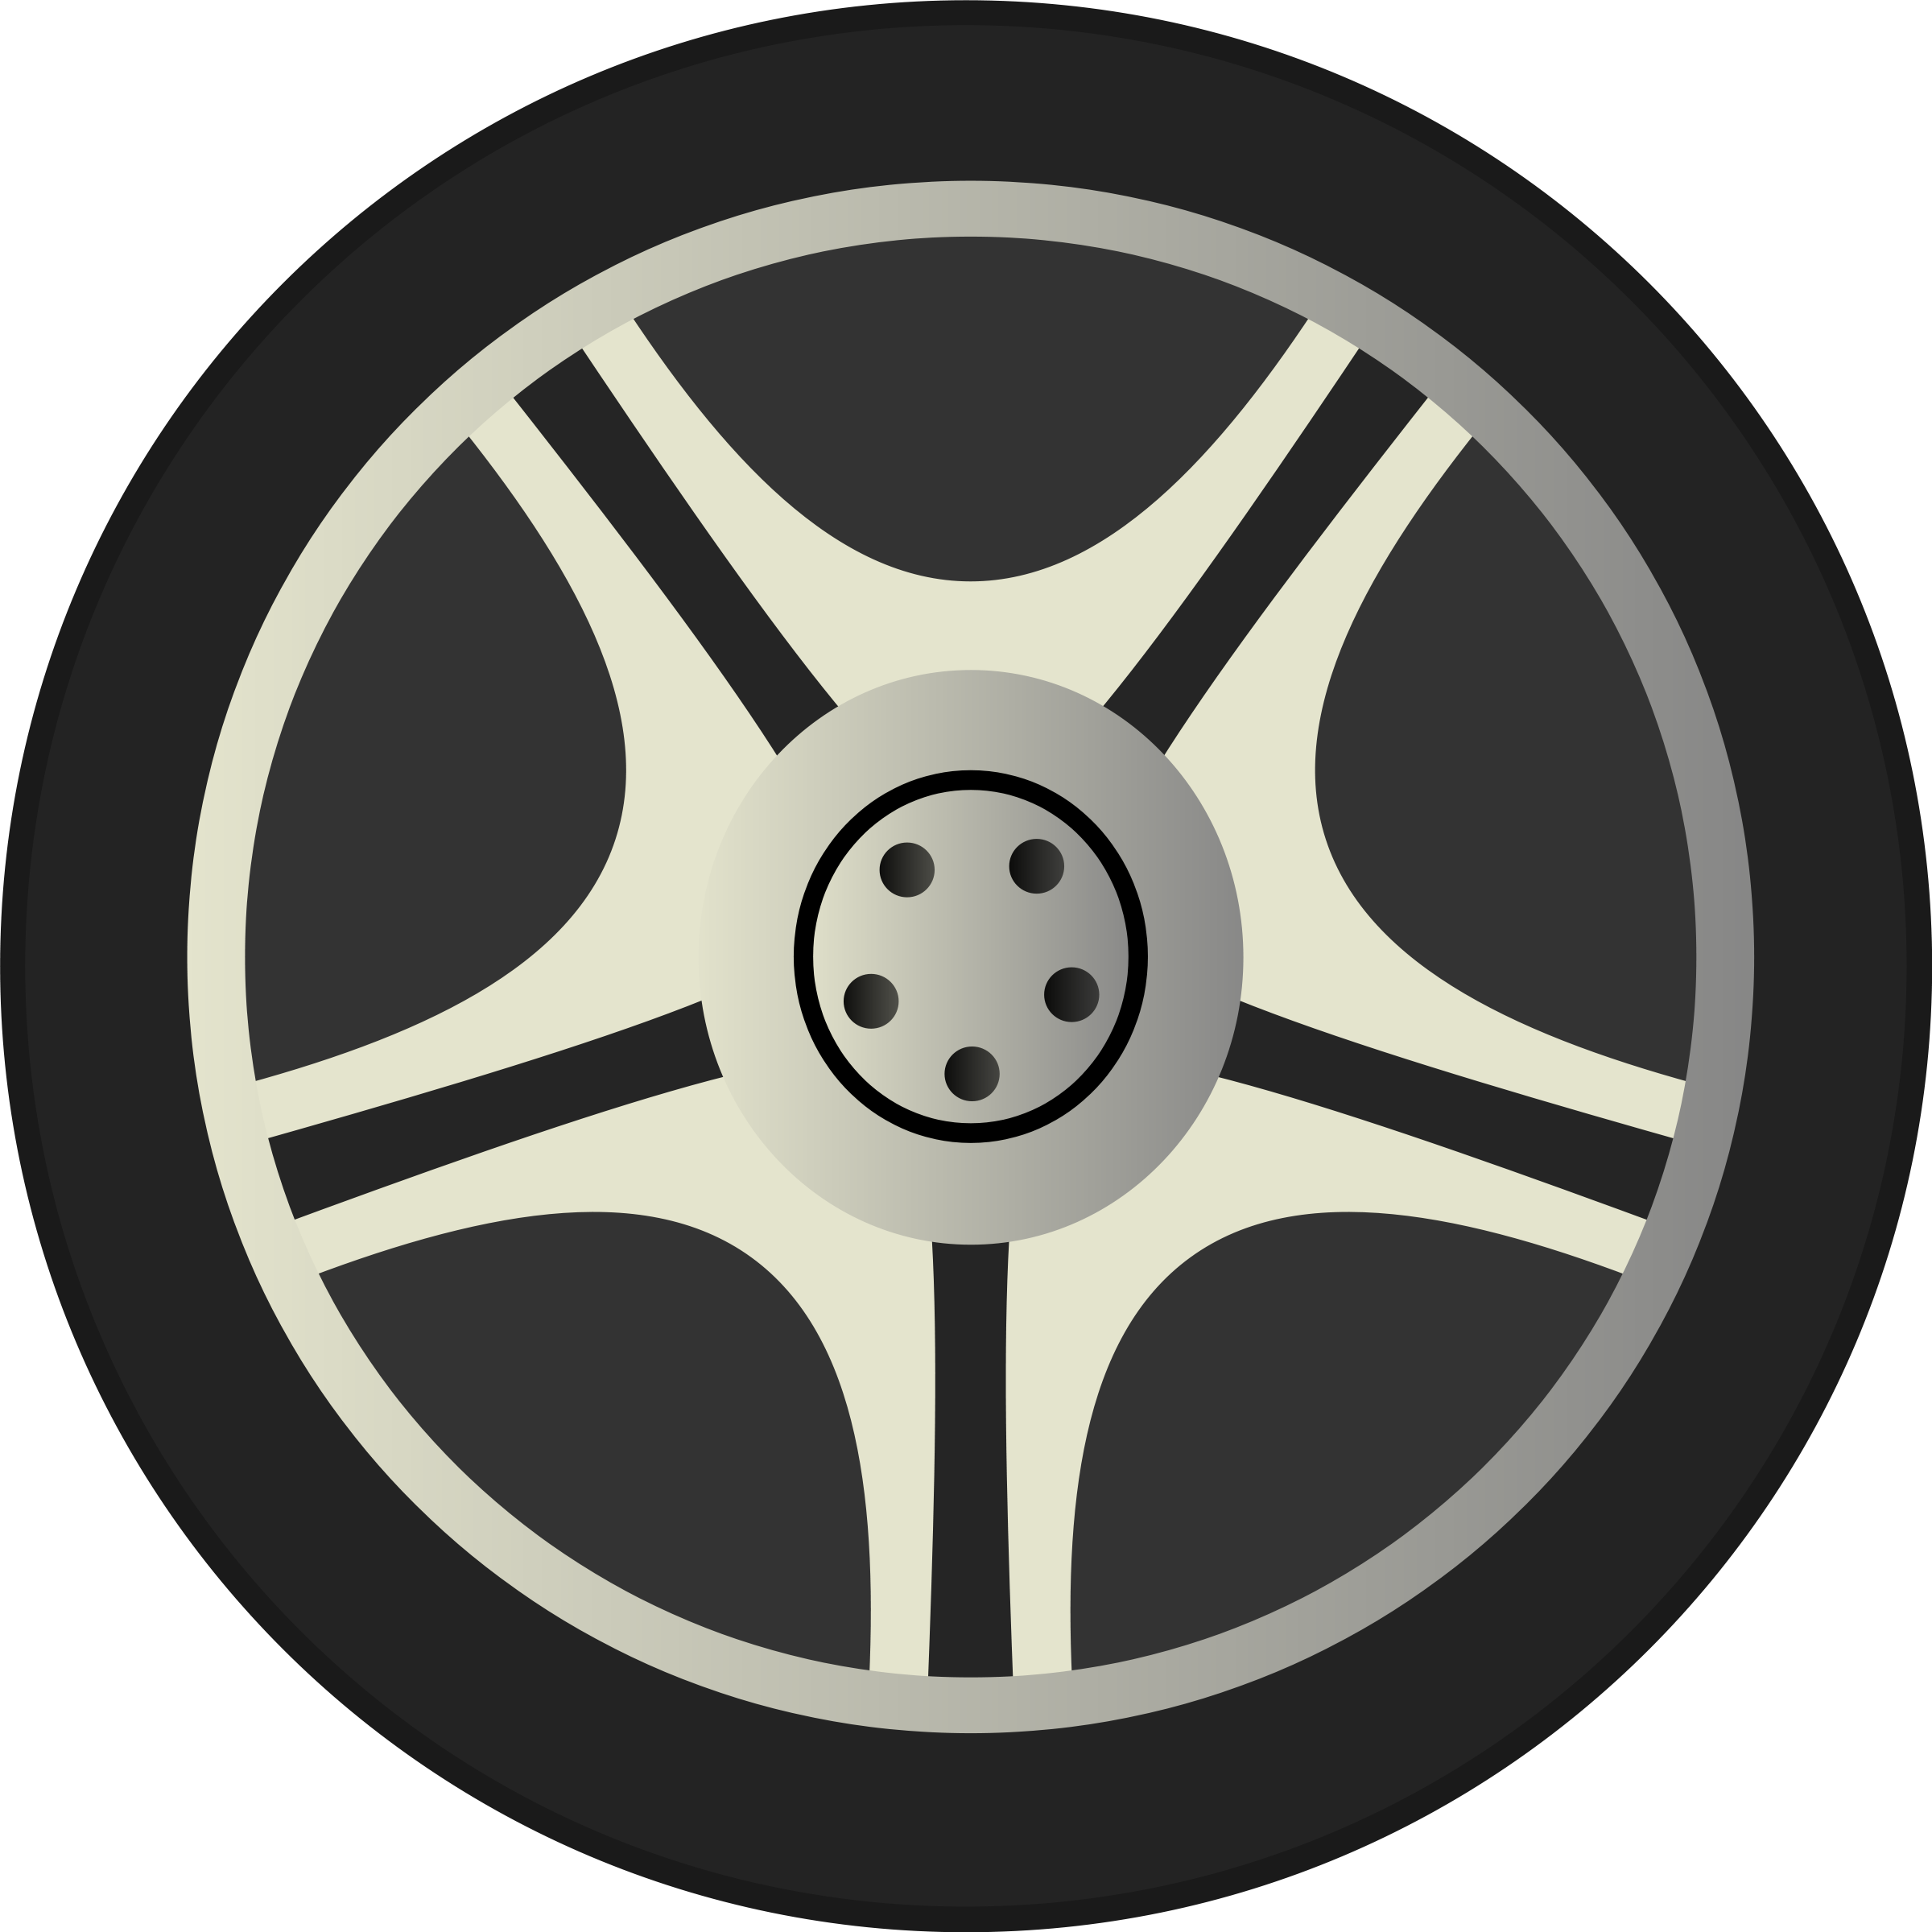 Car rim clipart clip free 28+ Collection of Car Rim Clipart | High quality, free cliparts ... clip free